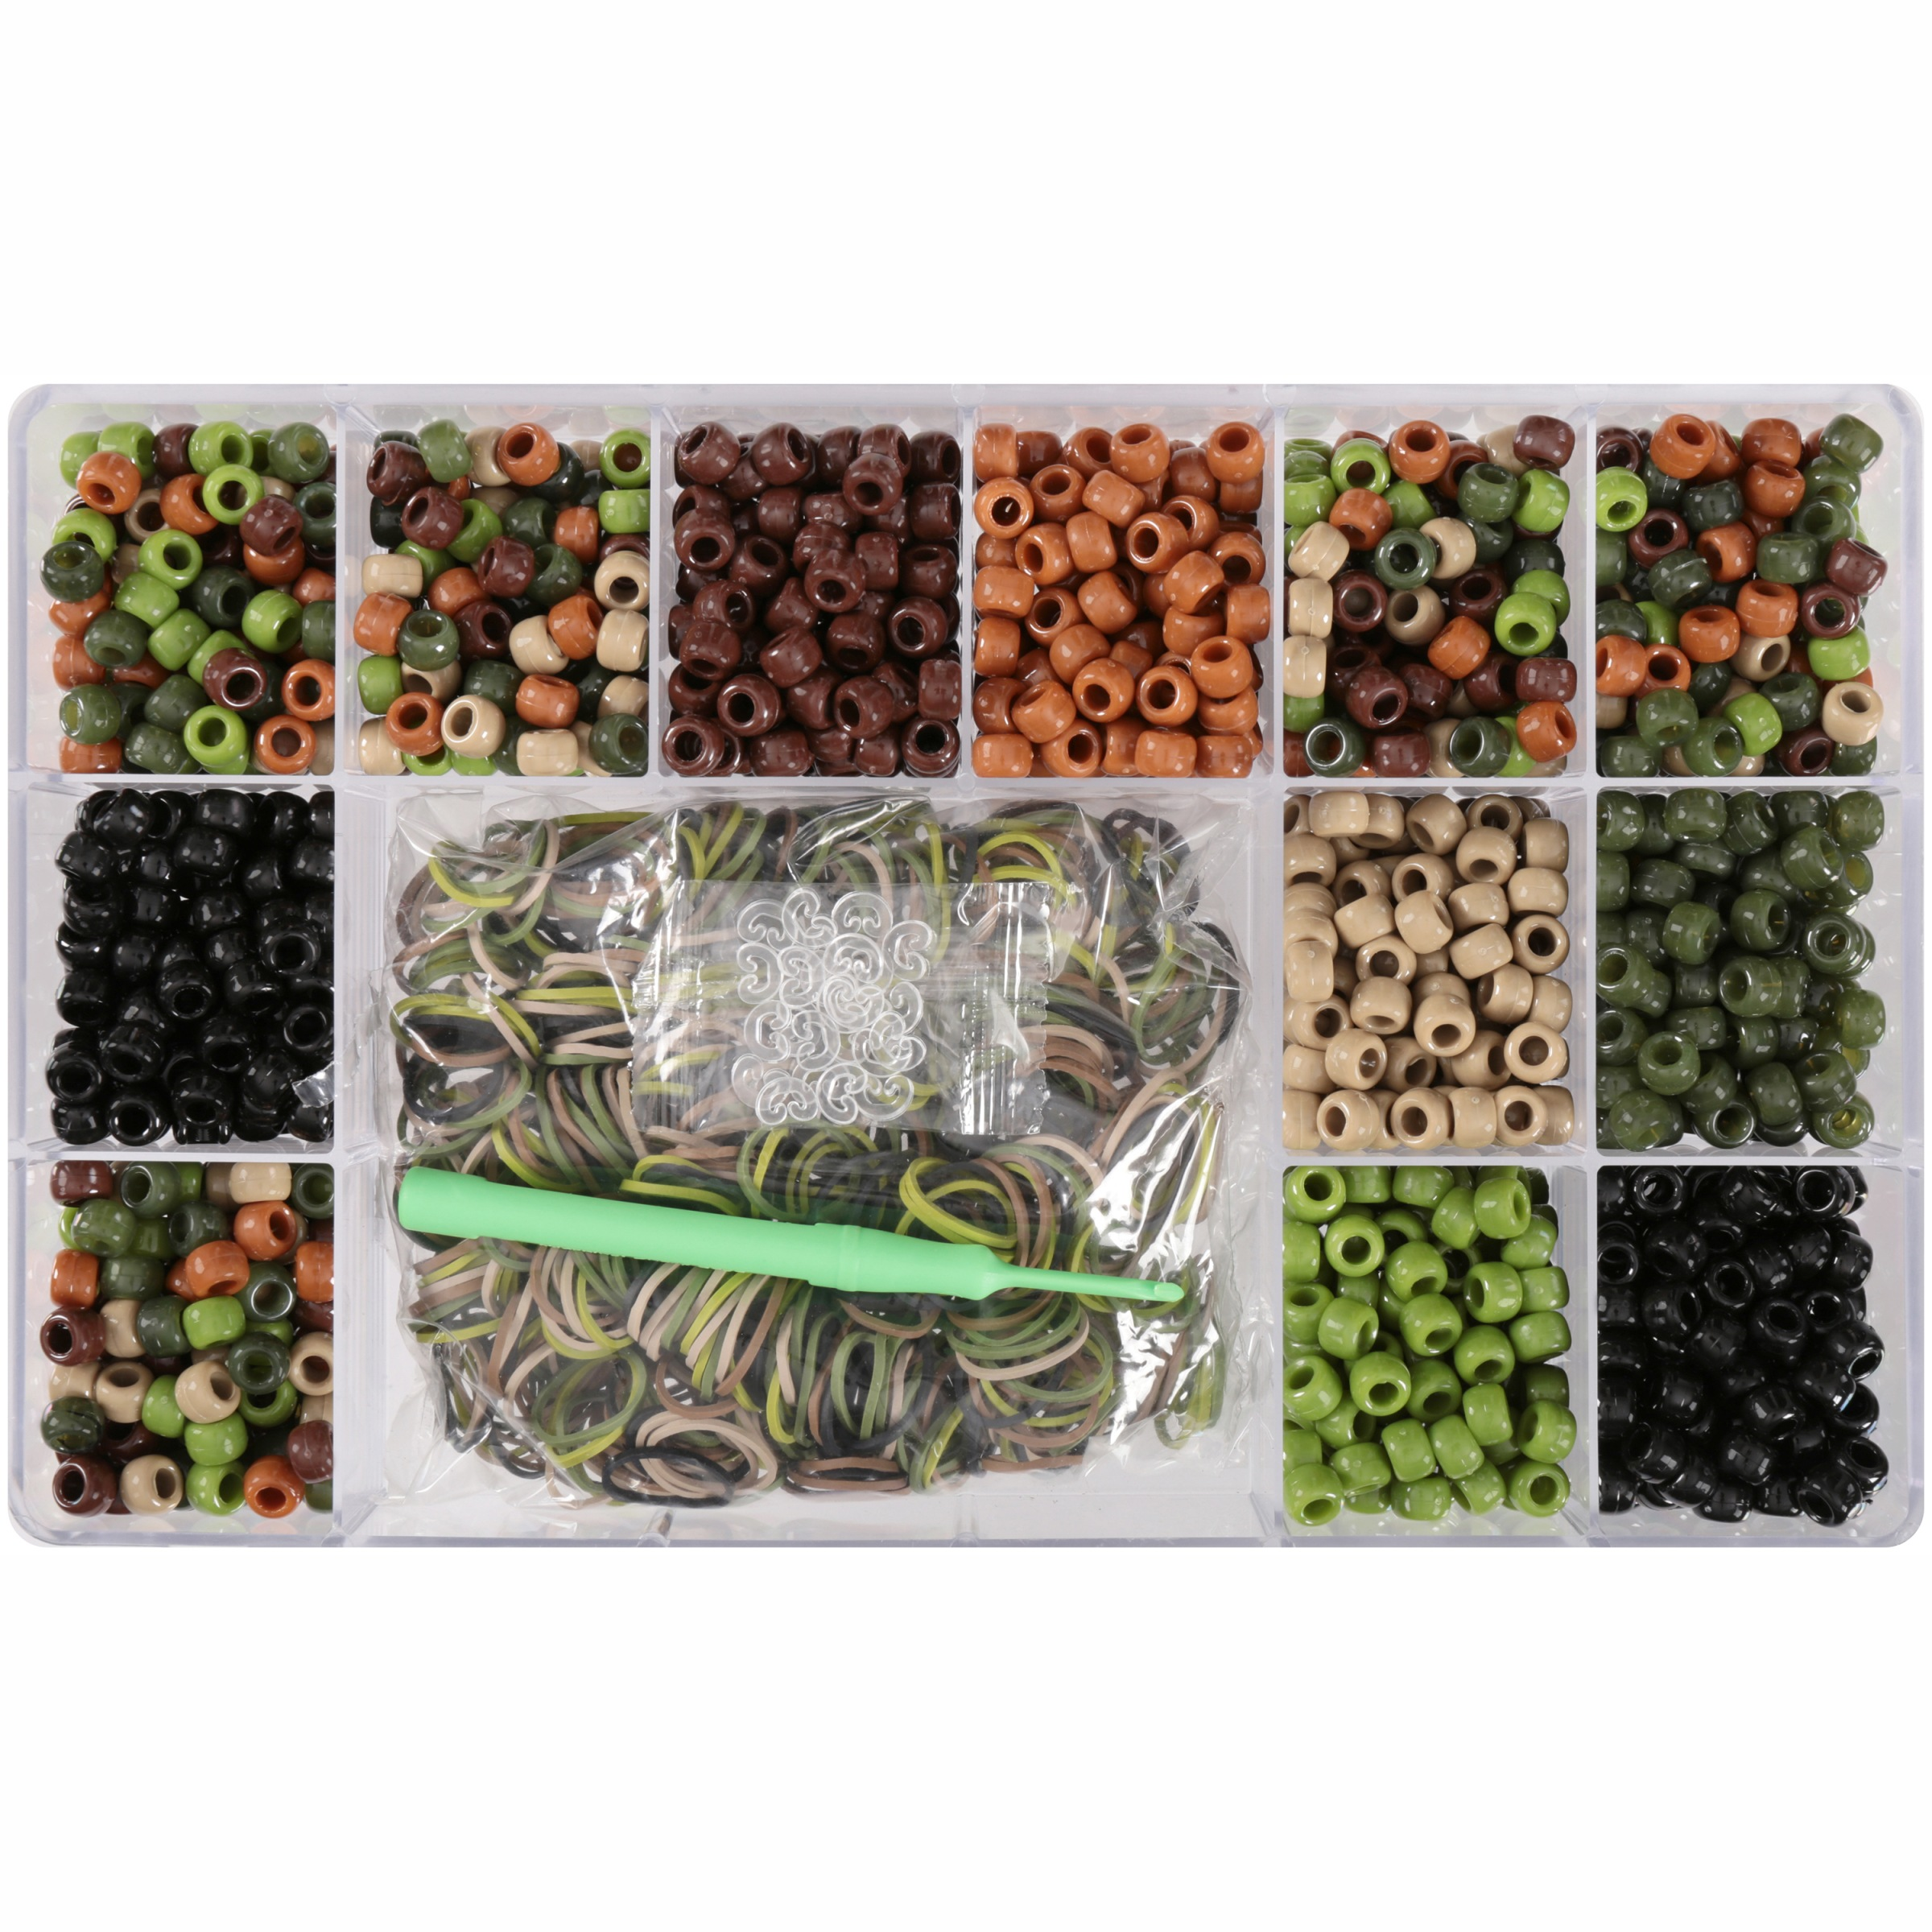 Wonderloom™ Camo Beads & Bands Craft Kit 1975 pc Container